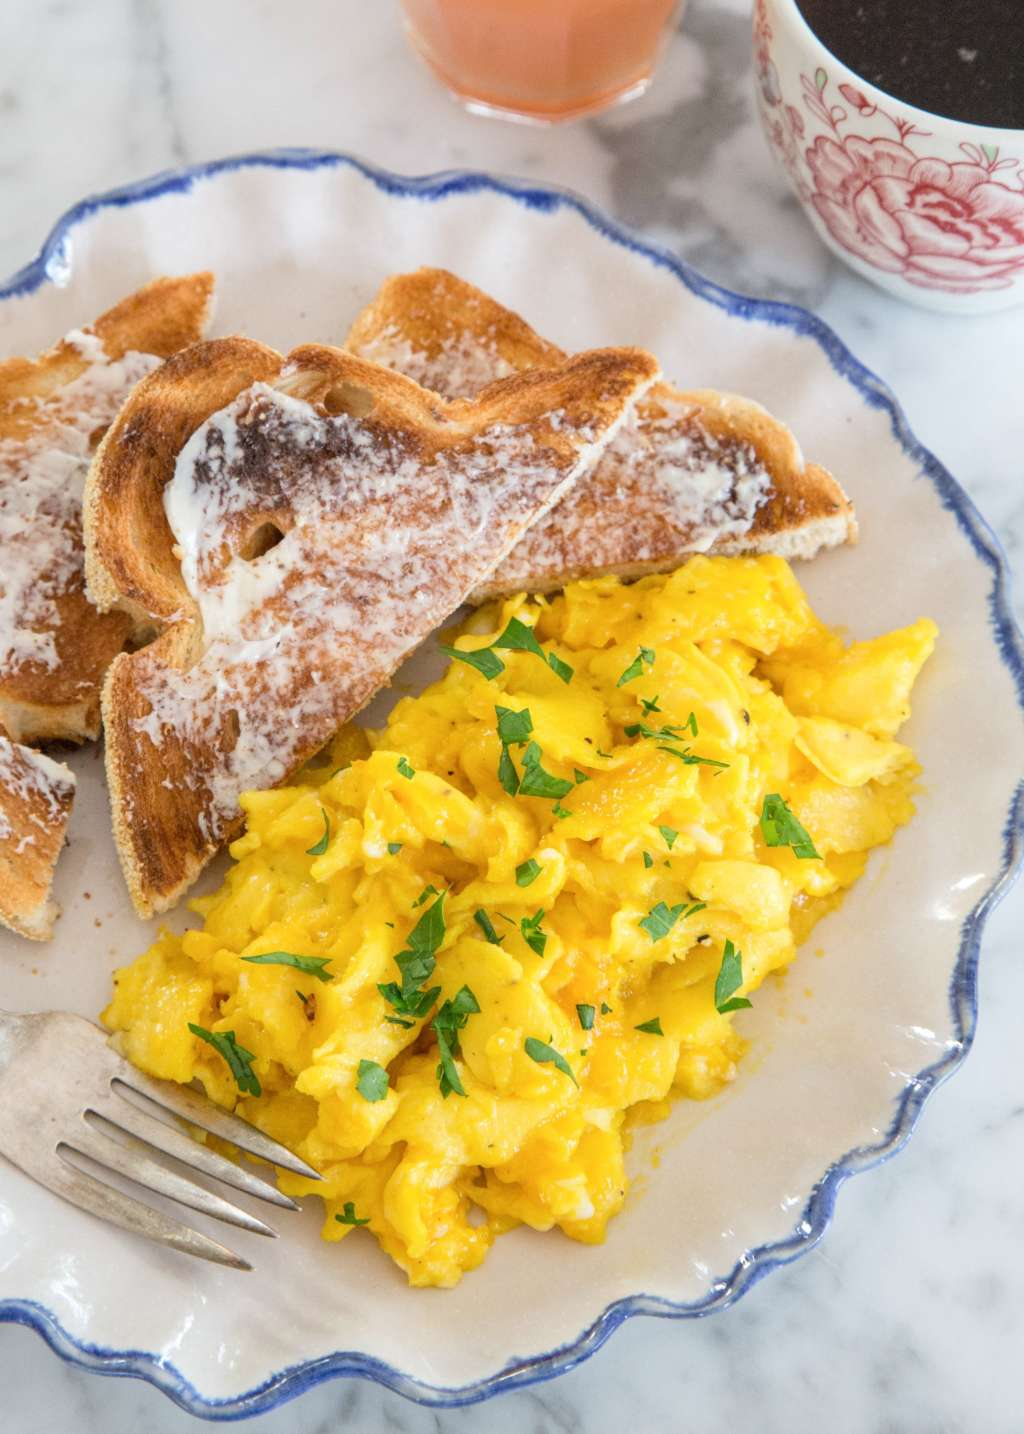 The One Thing You Need to Make Ultra-Creamy Scrambled Eggs